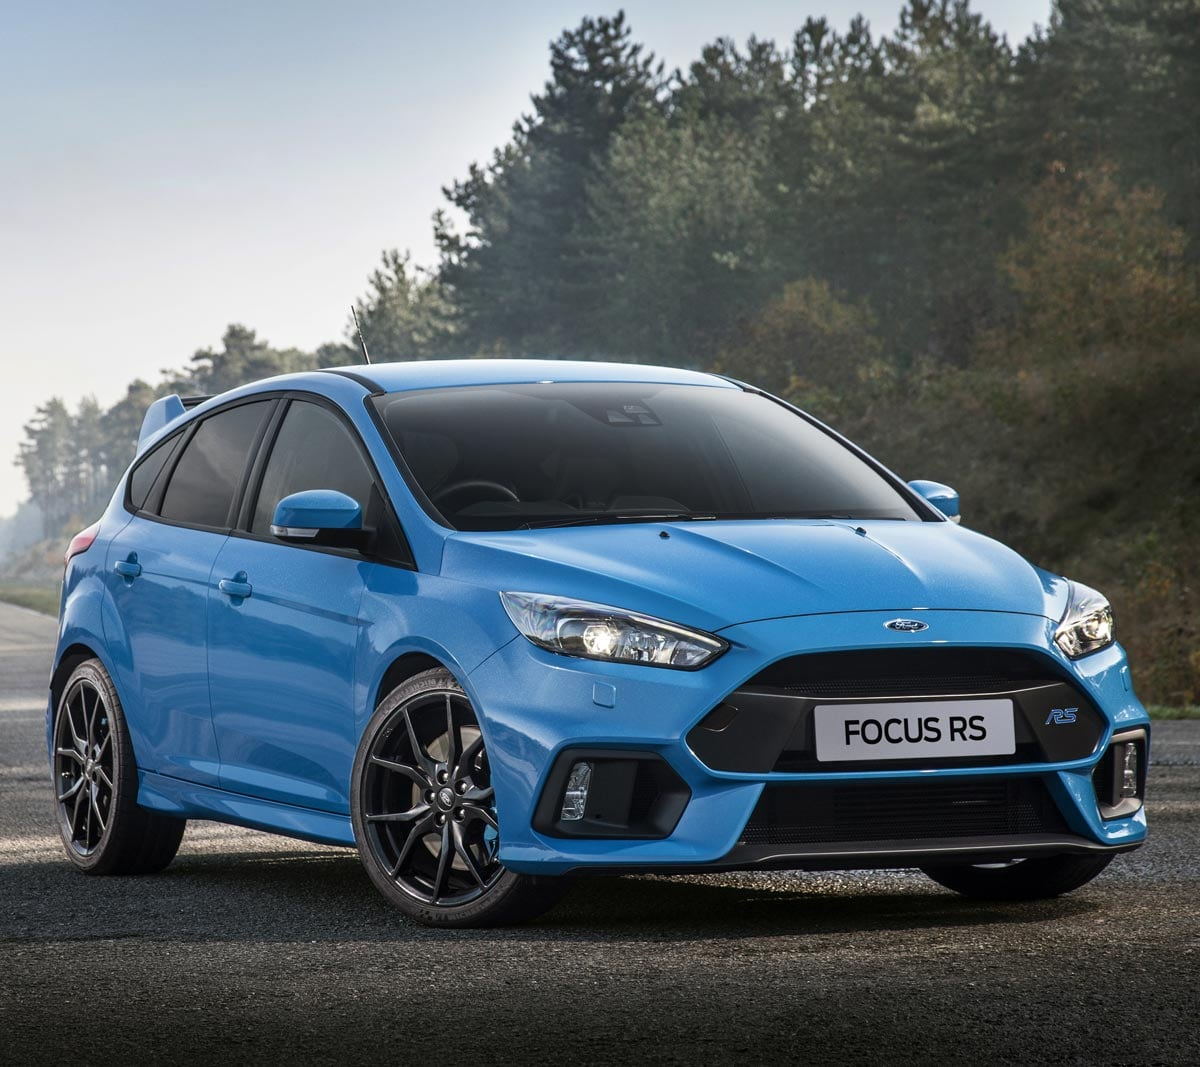 ford focus rs hot hatch performance car ford uk. Black Bedroom Furniture Sets. Home Design Ideas